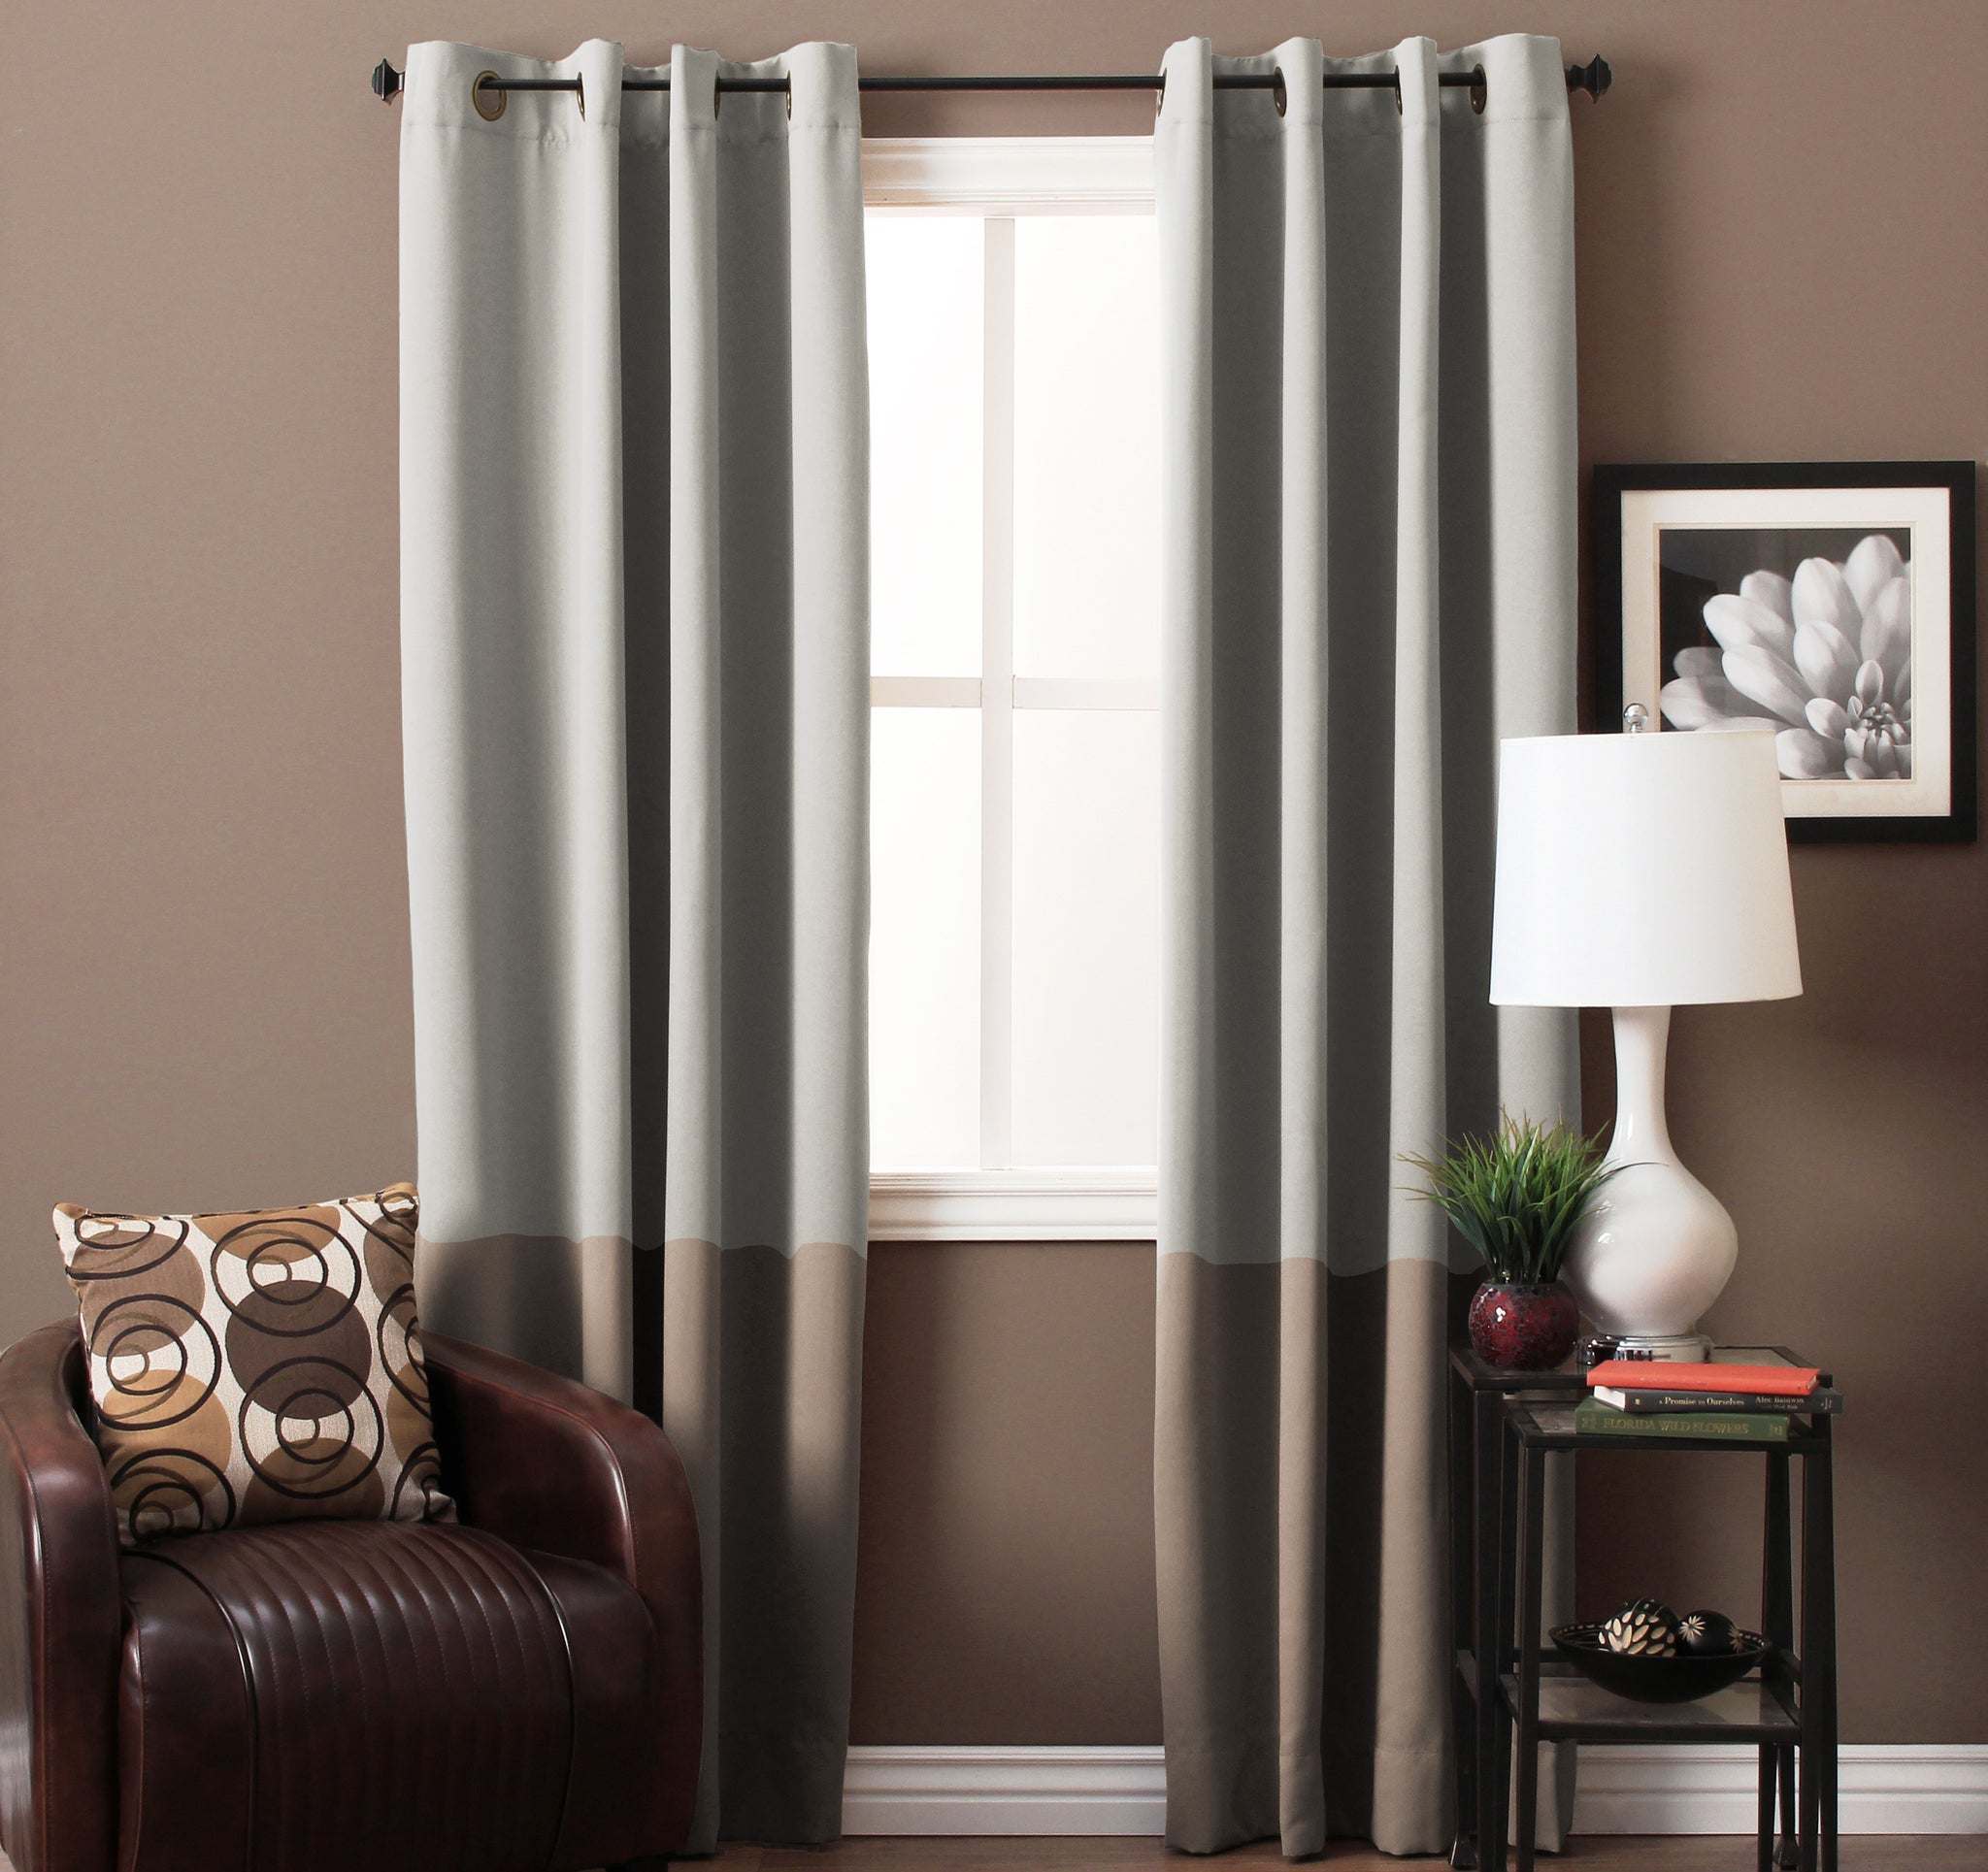 window aurora design home size thermal curtains darkening chevron curtain blackout zoe room best driftaway overlay dotted grommet lace awesome of insulated full insulating